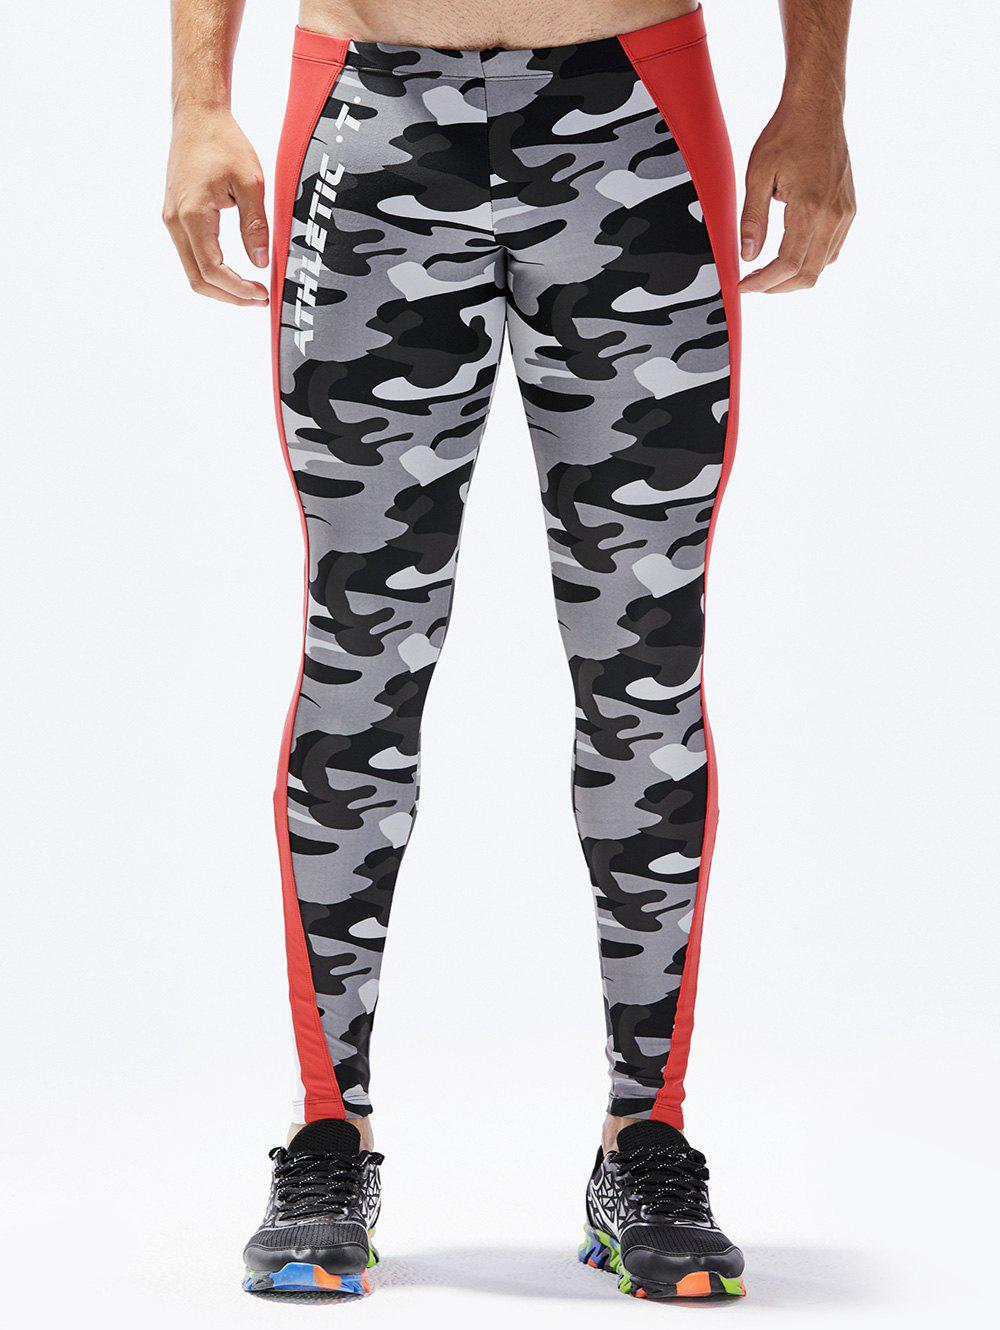 Affordable Camouflage Pattern Tight-fitting Sport Pants